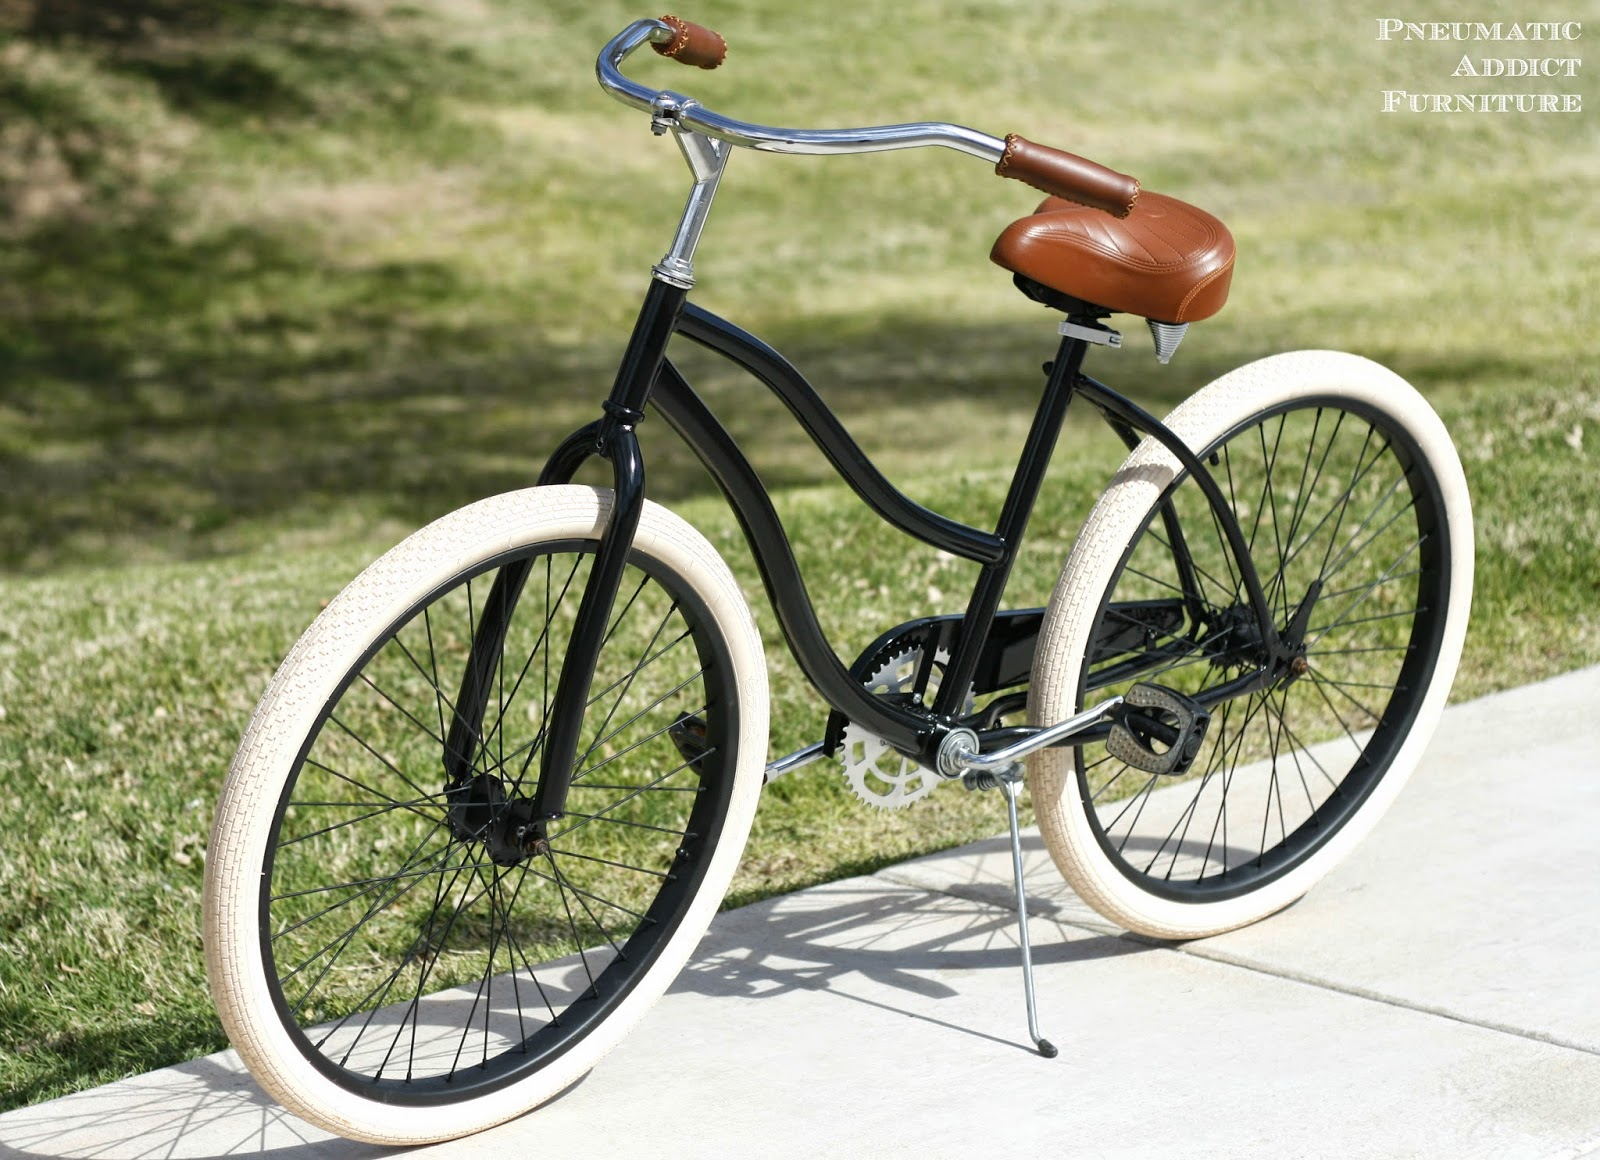 DIY black and cream beach cruiser make-over